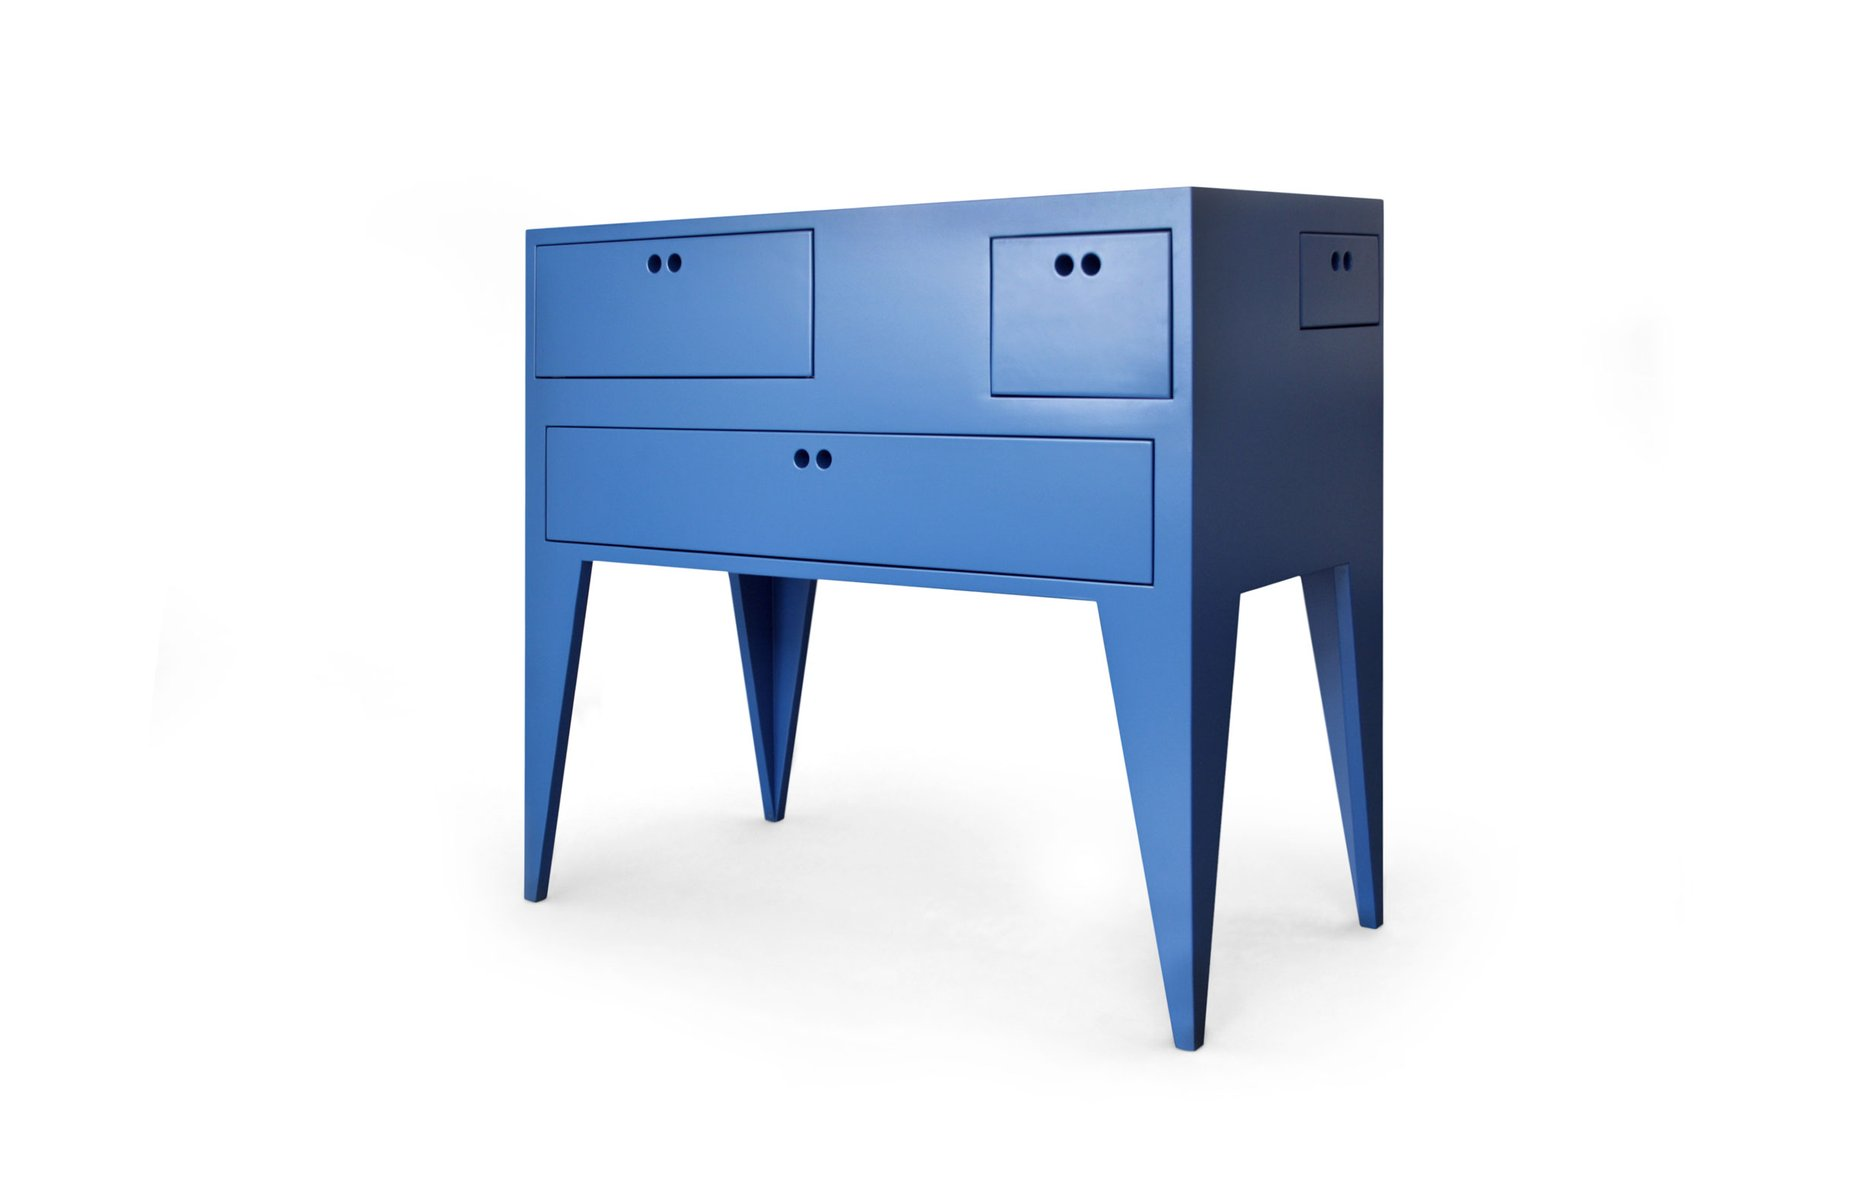 Mob n2 sideboard by mo ow for sale at pamono for Sideboard 2 m lang